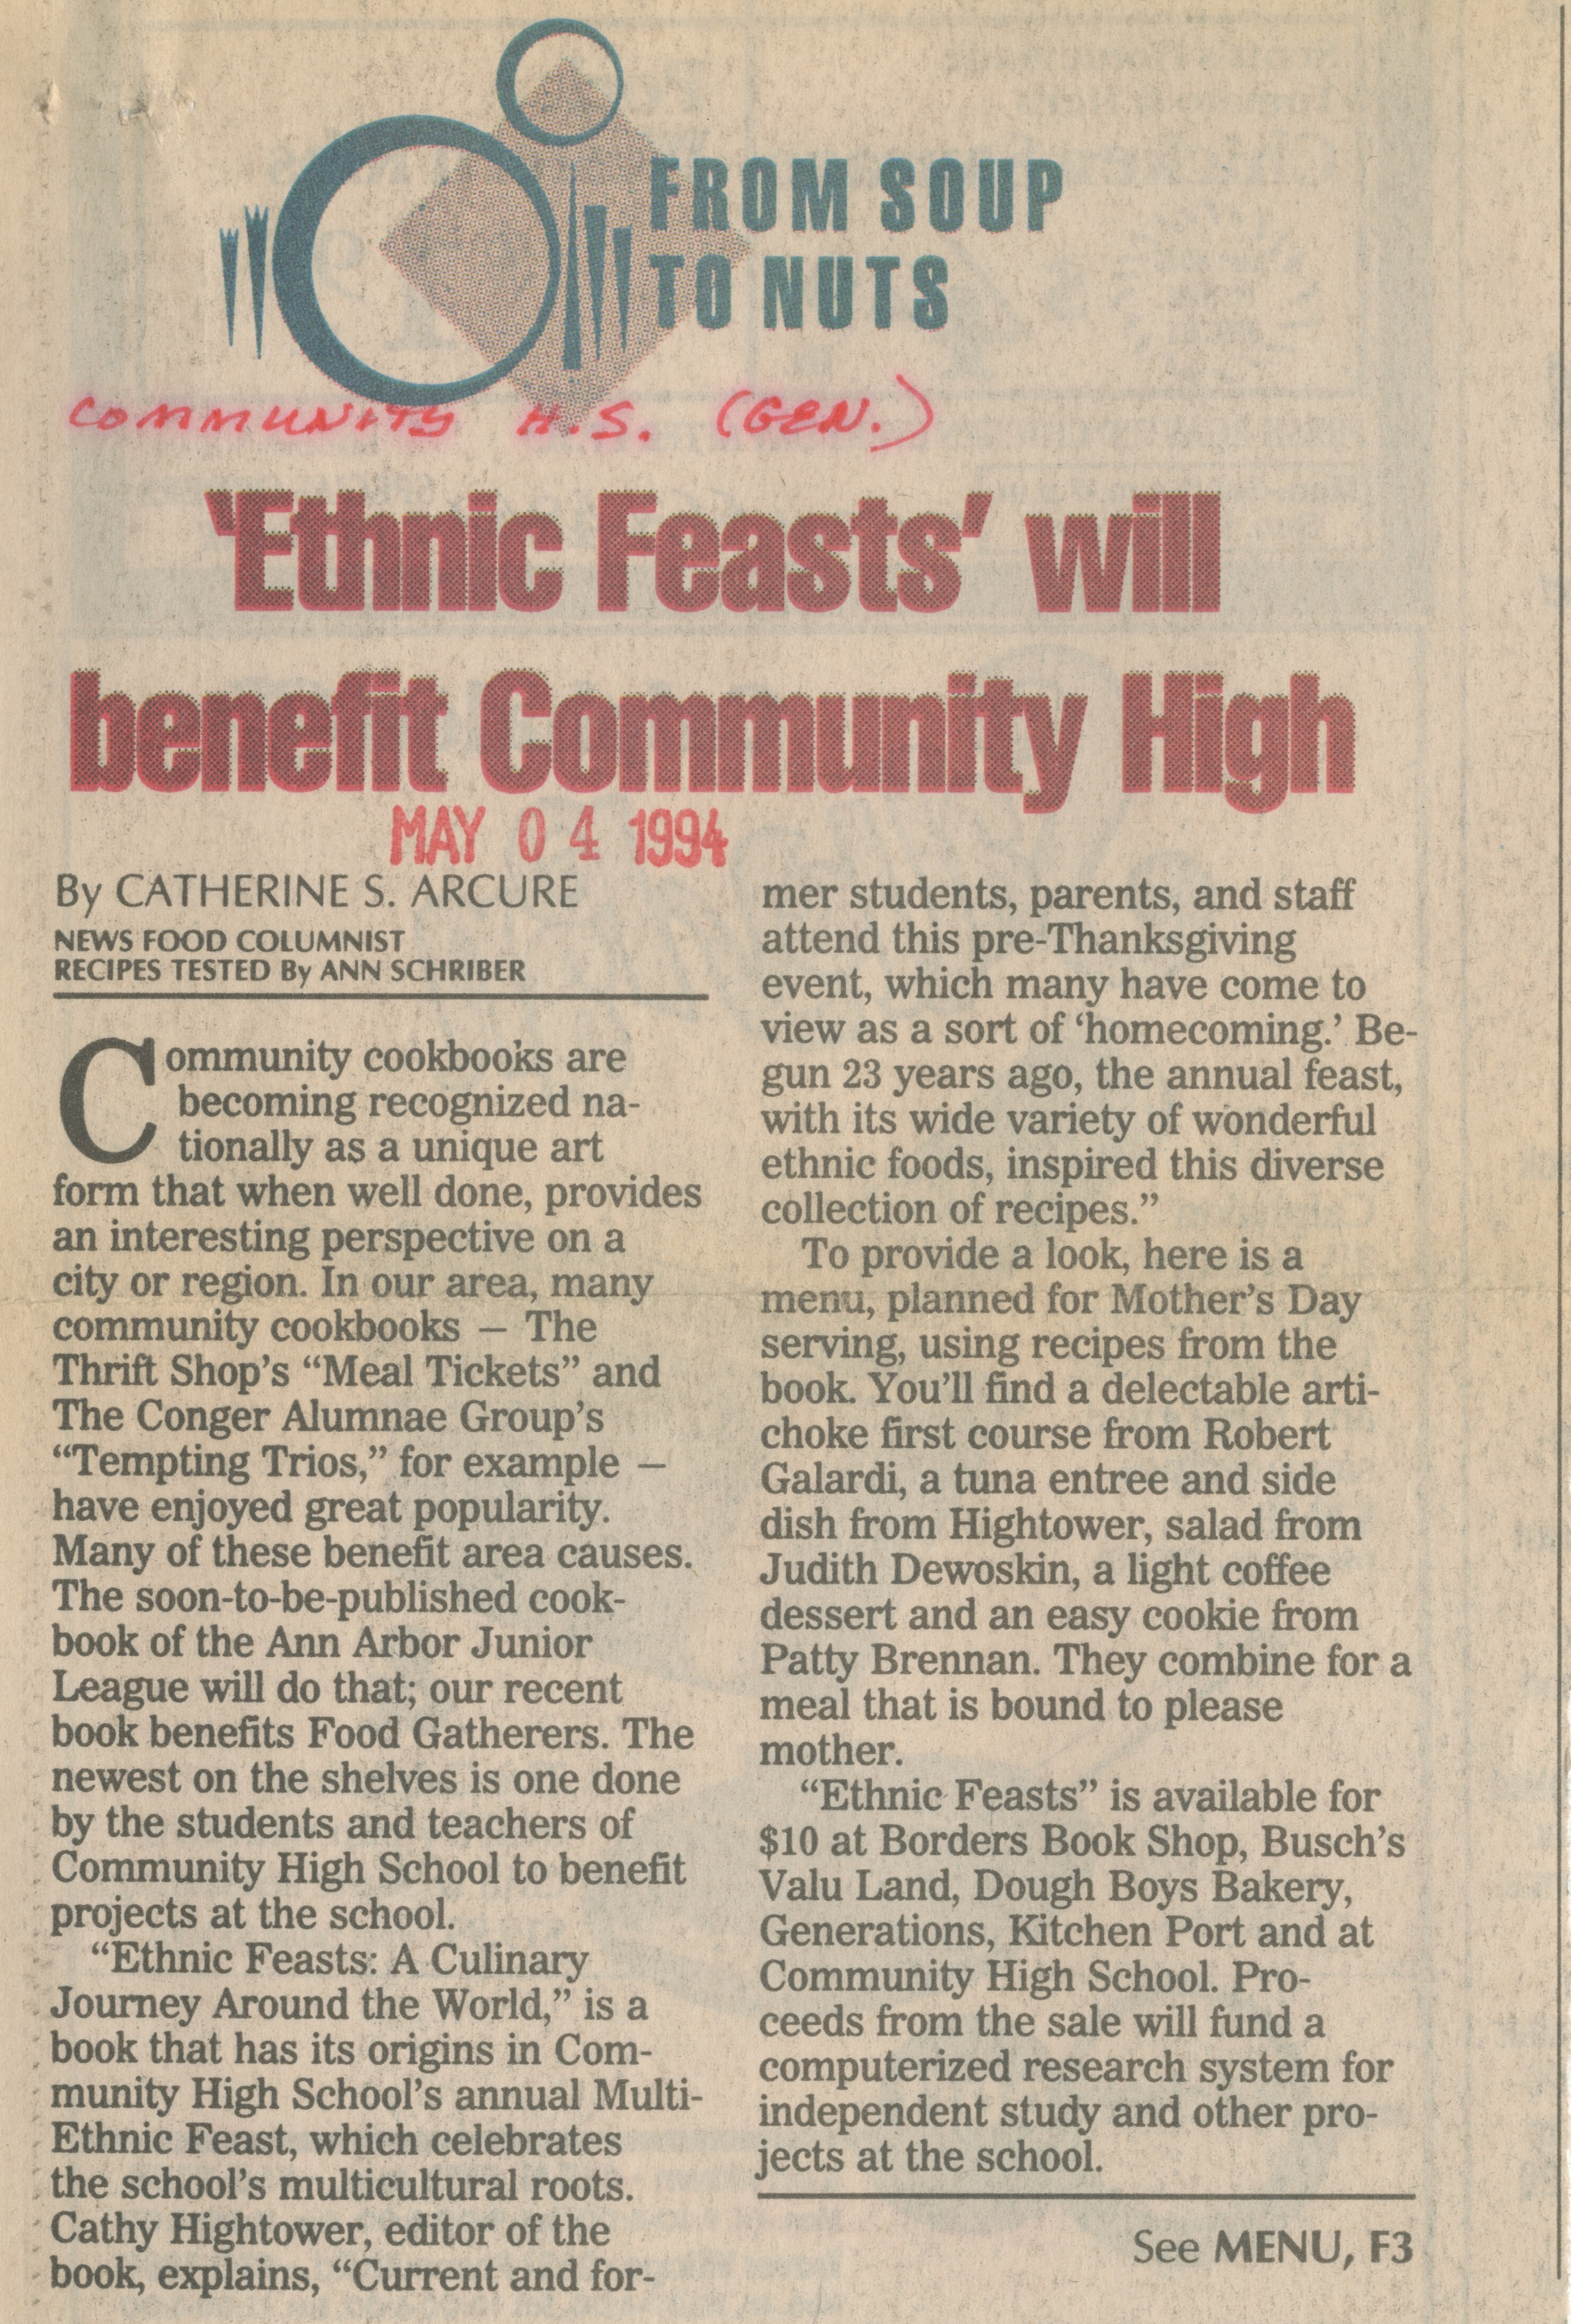 Ethnic Feasts will benefit Community High image